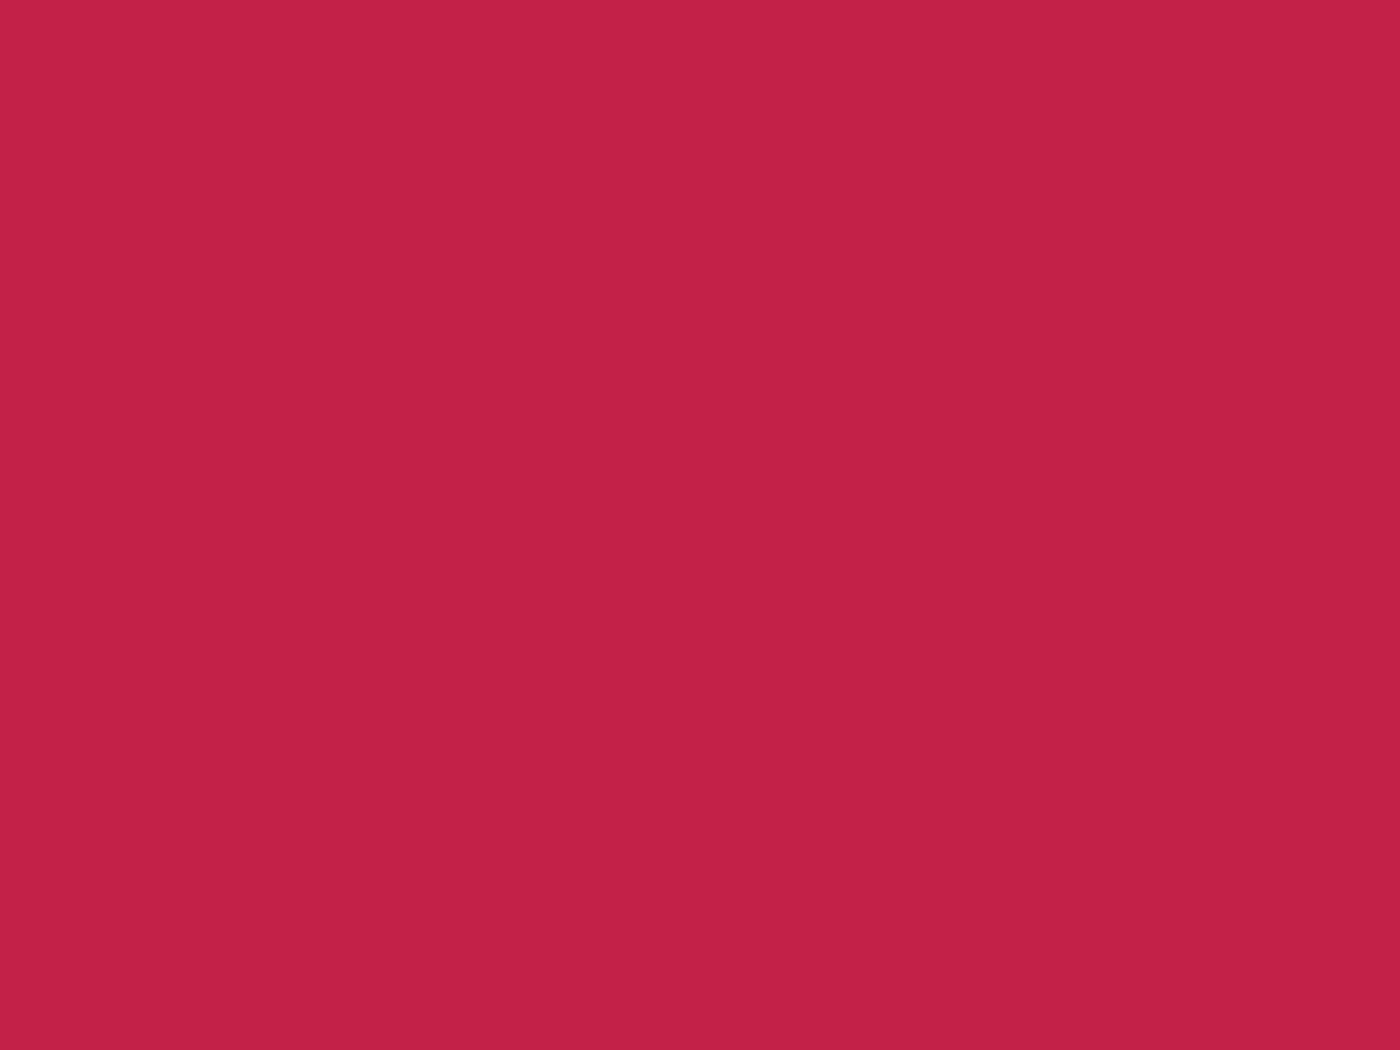 1400x1050 Bright Maroon Solid Color Background